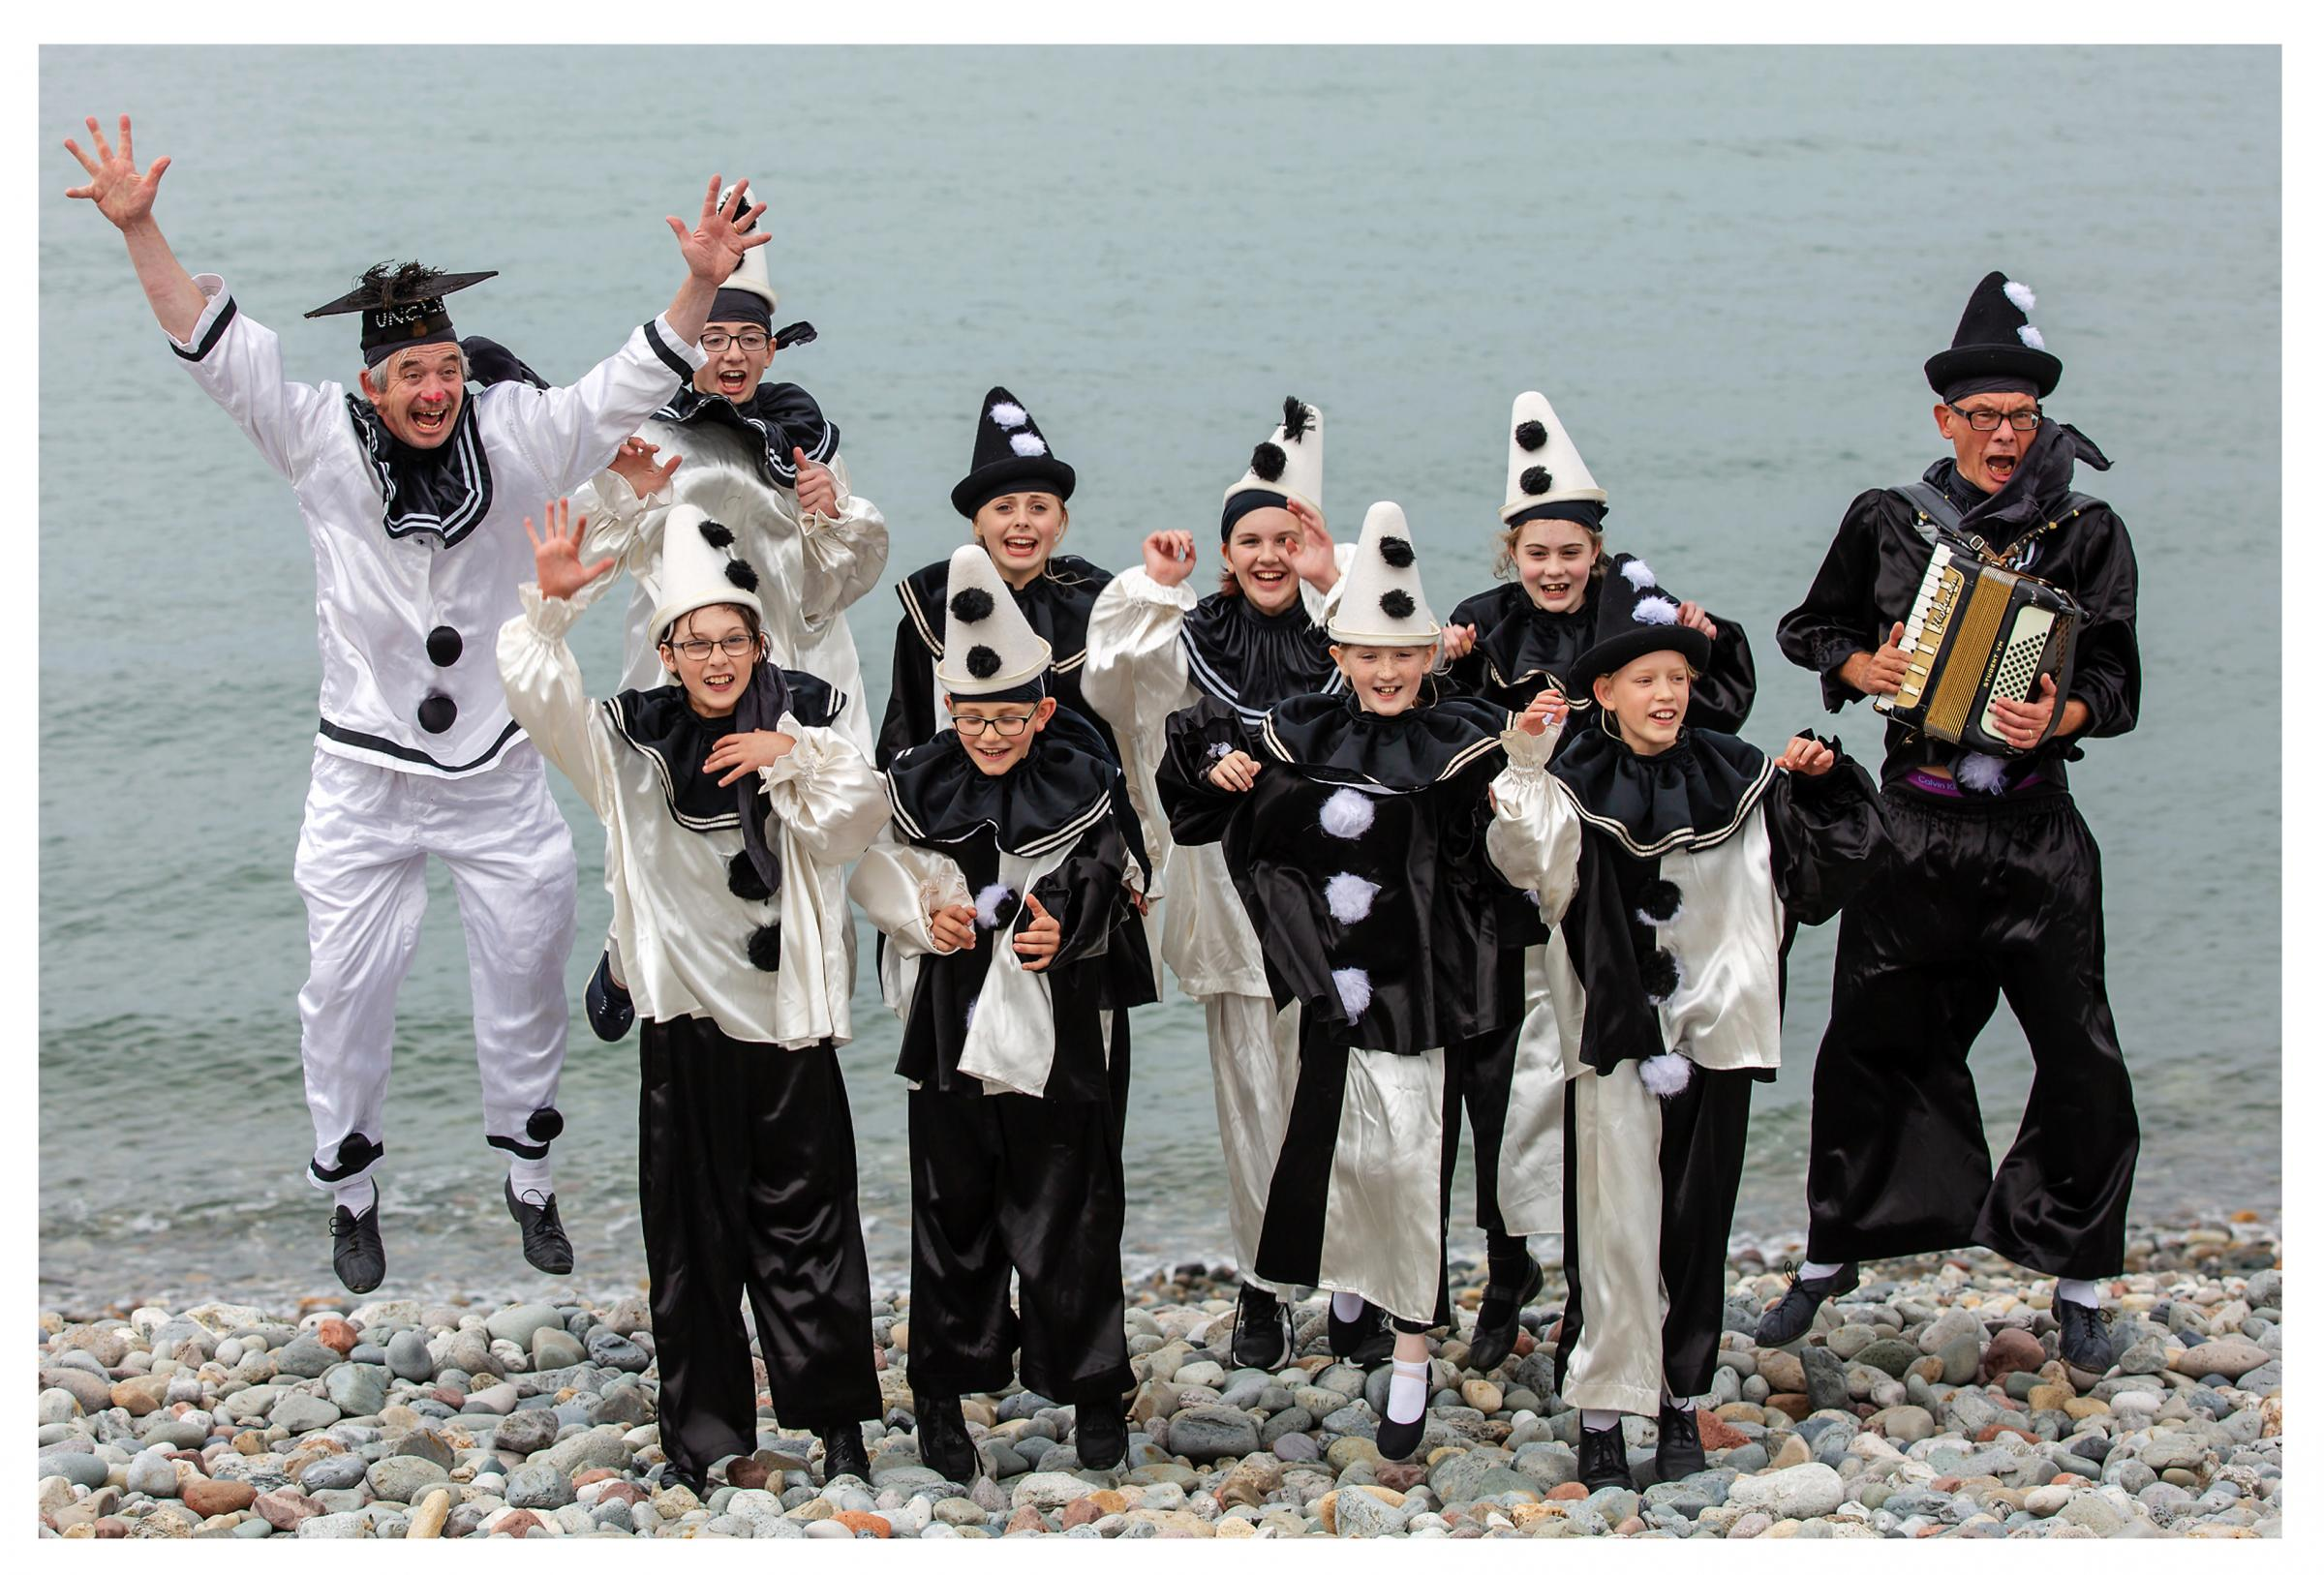 The Jollies, Llandudno's very own youth Pierrot troupe, led by Uncle Tacko (far left) and Mr Macko (far right). Picture: Paul Sampson